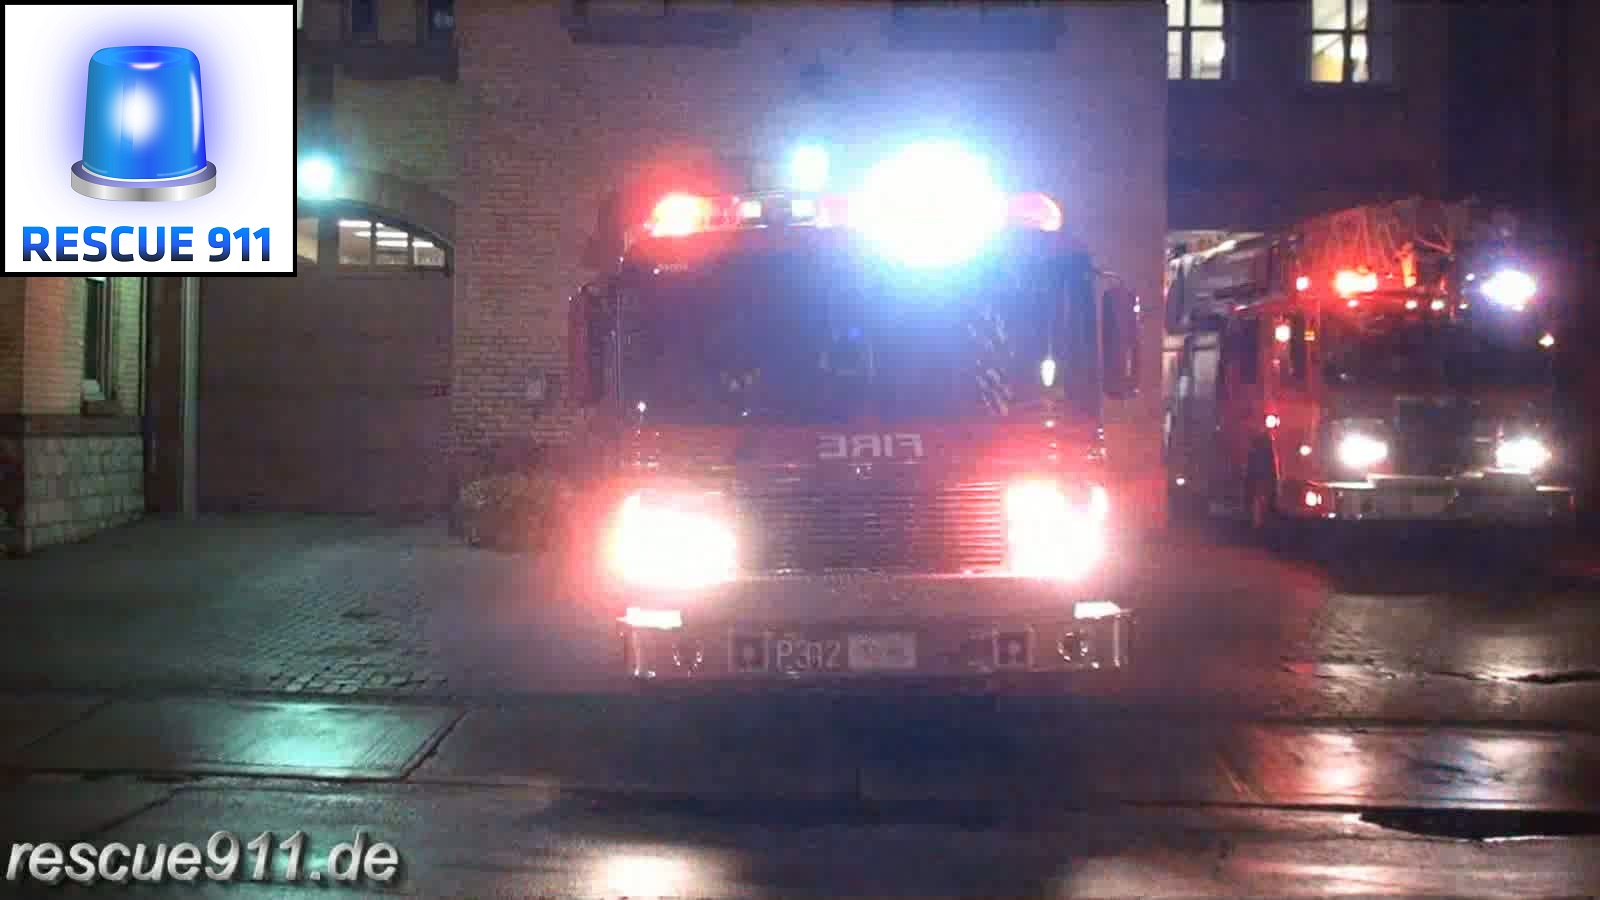 Pump 312 + Aerial 312 + Chief 31 Toronto Fire Services (stream)